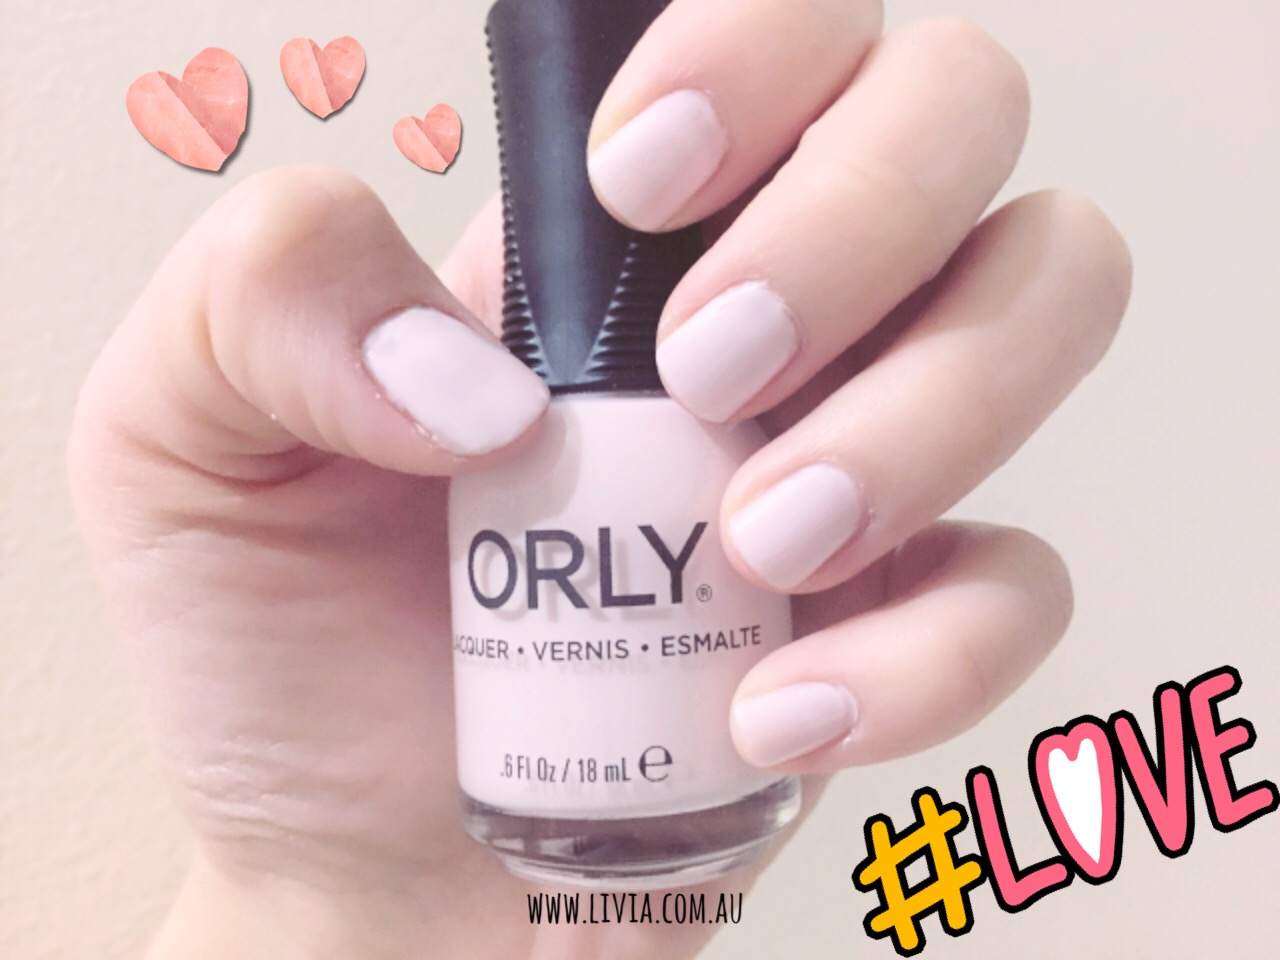 L I V I A: AND THE BRIDE WORE, ORLY! WEDDING PREP SPECIAL FEAT. MY ...